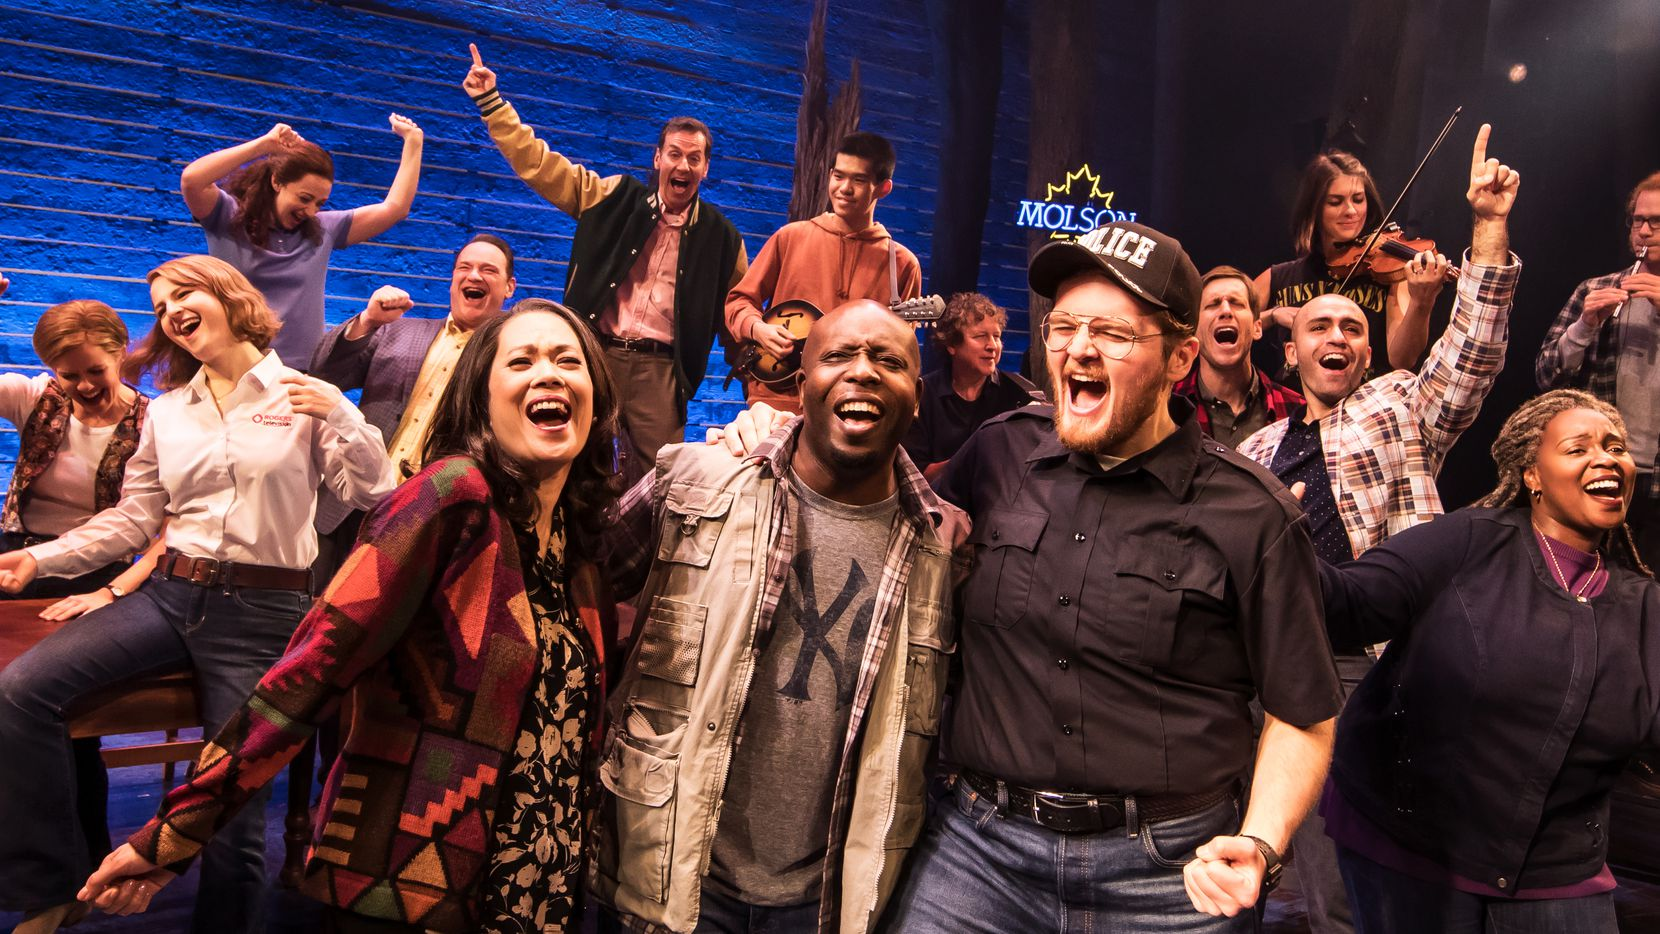 """Come From Away"" tells the story of 6,500 passengers whose planes were diverted to the small Canadian town of Gander, Newfoundland on 9/11, and the local people who took care of them for five anxious days. The North American tour of the hit Broadway musical stops in Dallas at the Music Hall at Fair Park from March 10-22. Dallas actor Chamblee Ferguson (wearing a letter jacket and pointing to the sky in background) is one of the show's 12 lead singers."